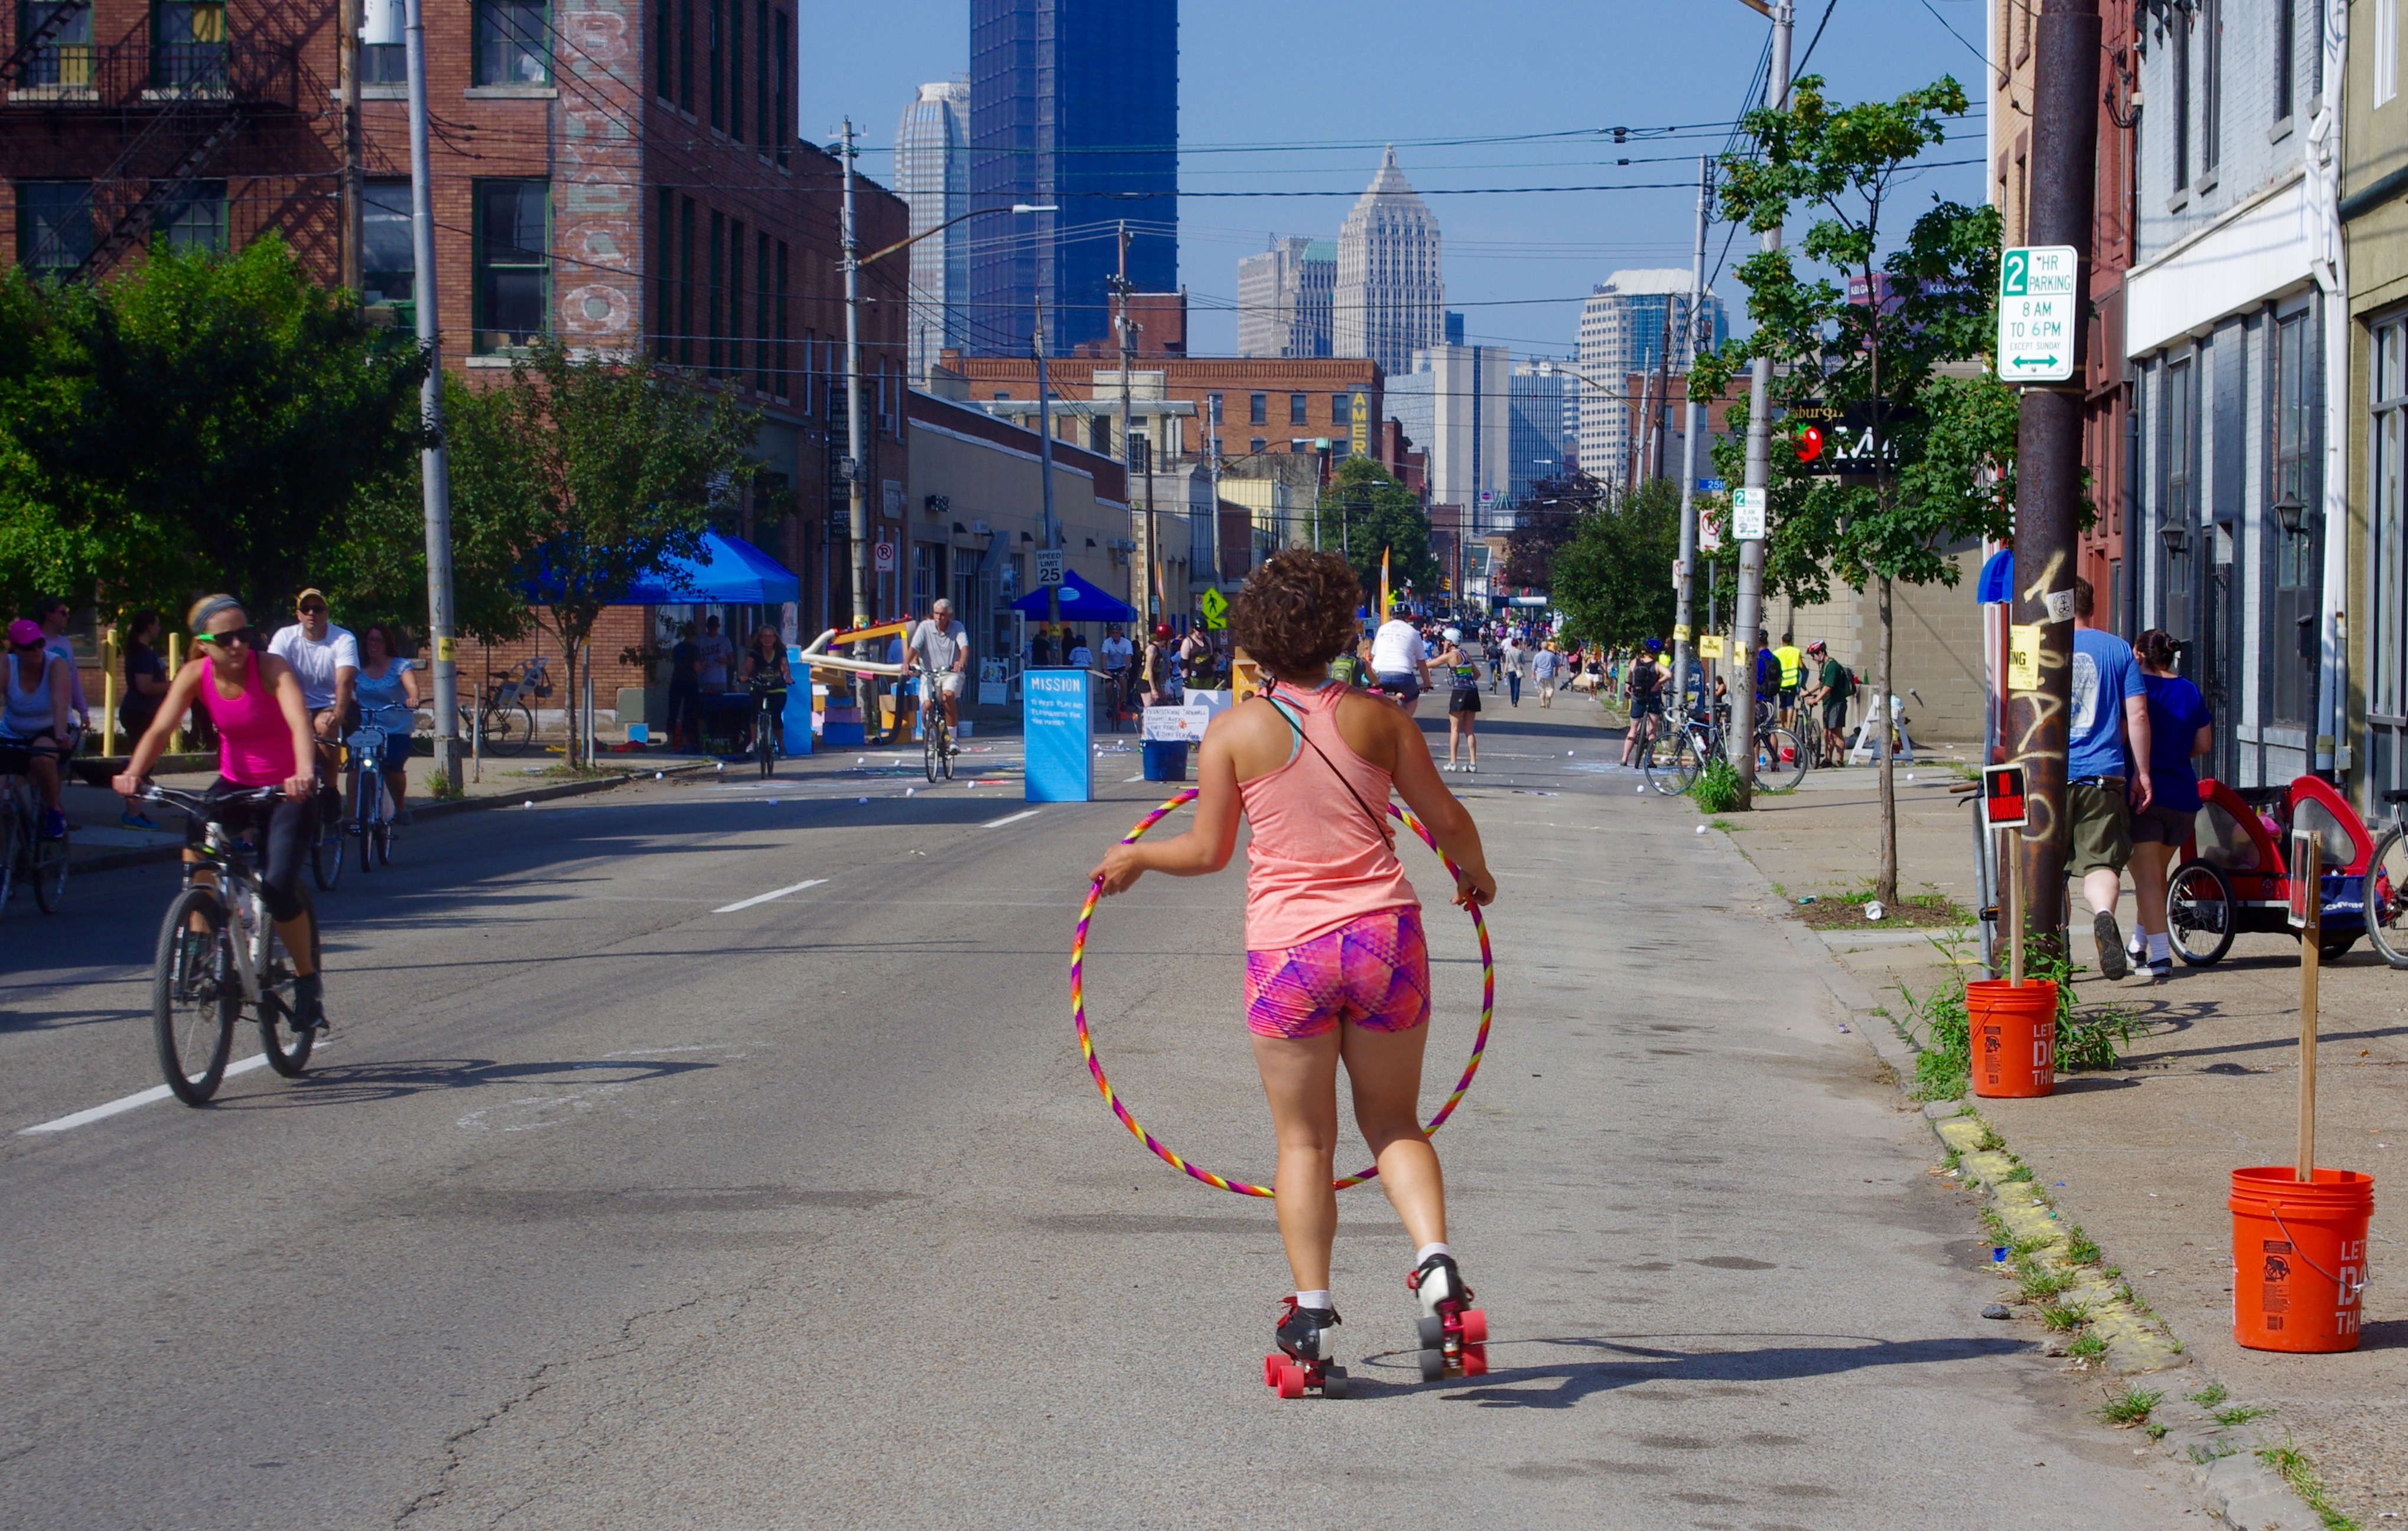 Holly Miller hula hoops while roller skating towards downtown.